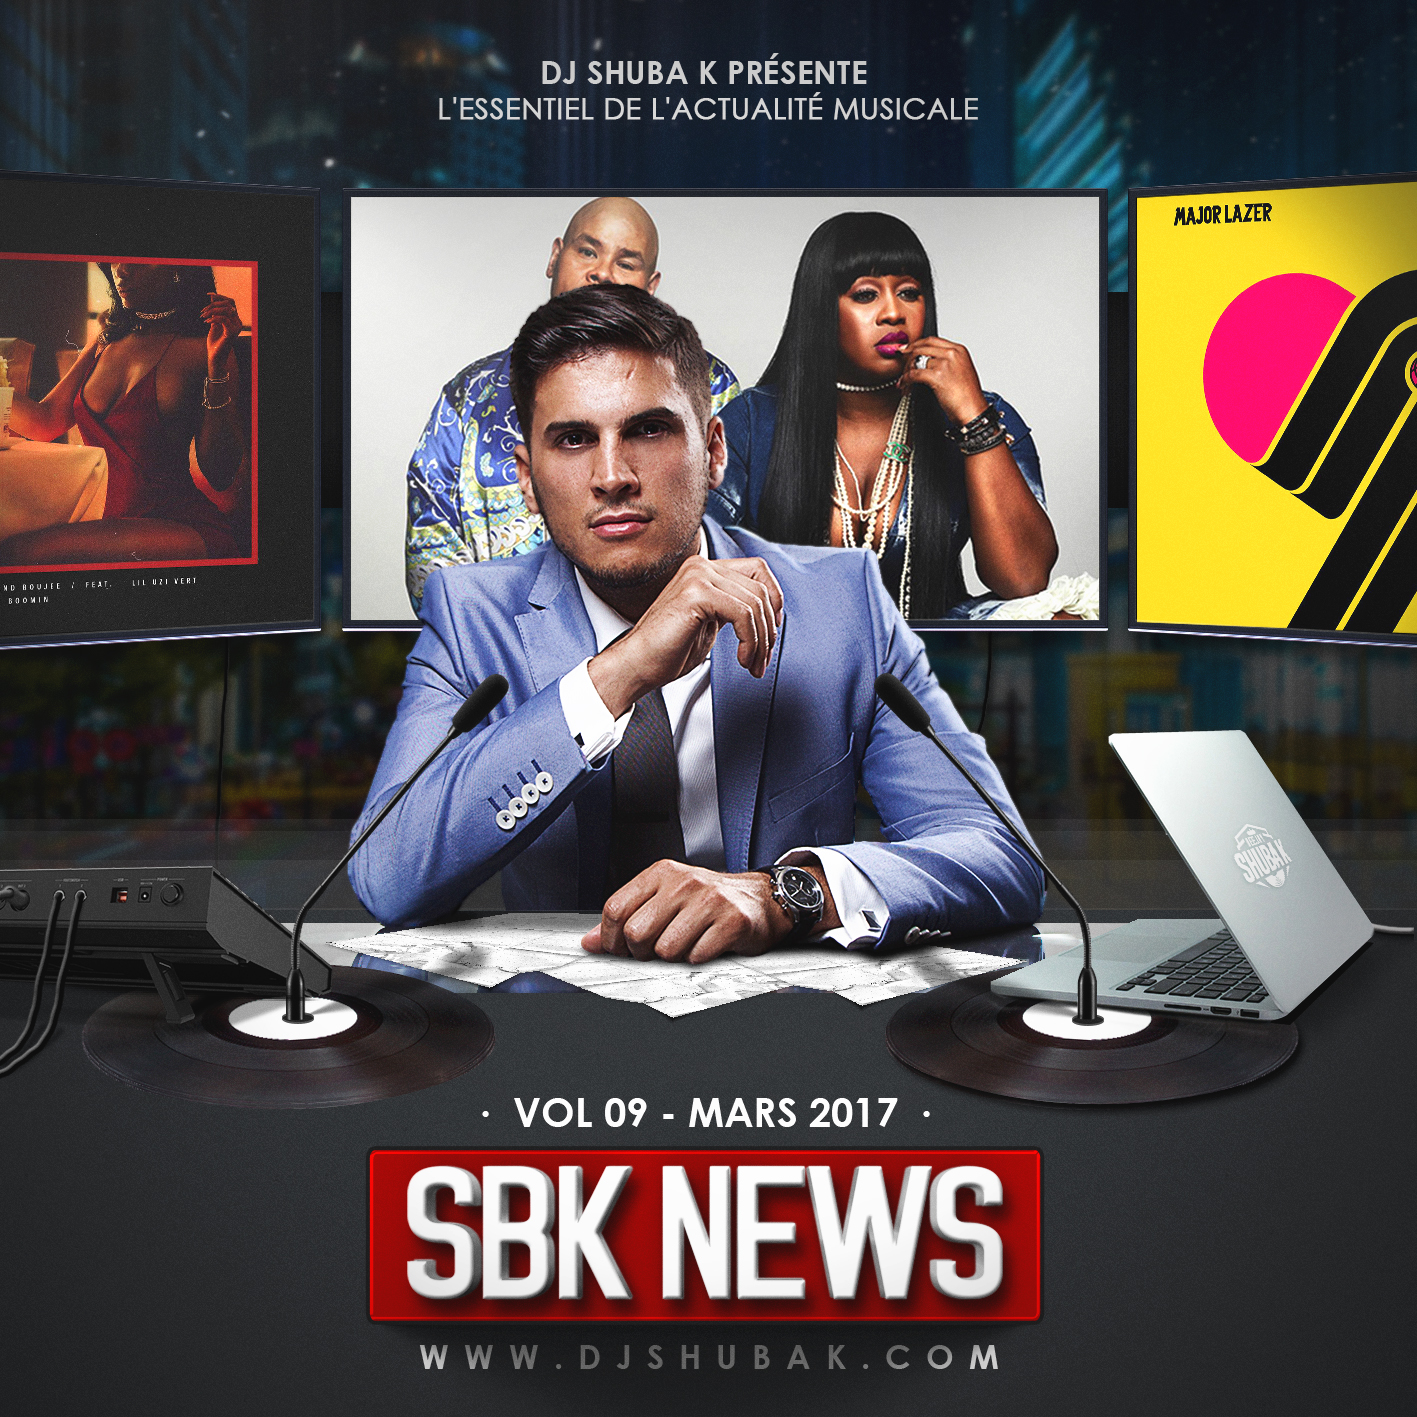 SBK_NEWS_9_PODCAST_MIX_DJ_SHUBA_K